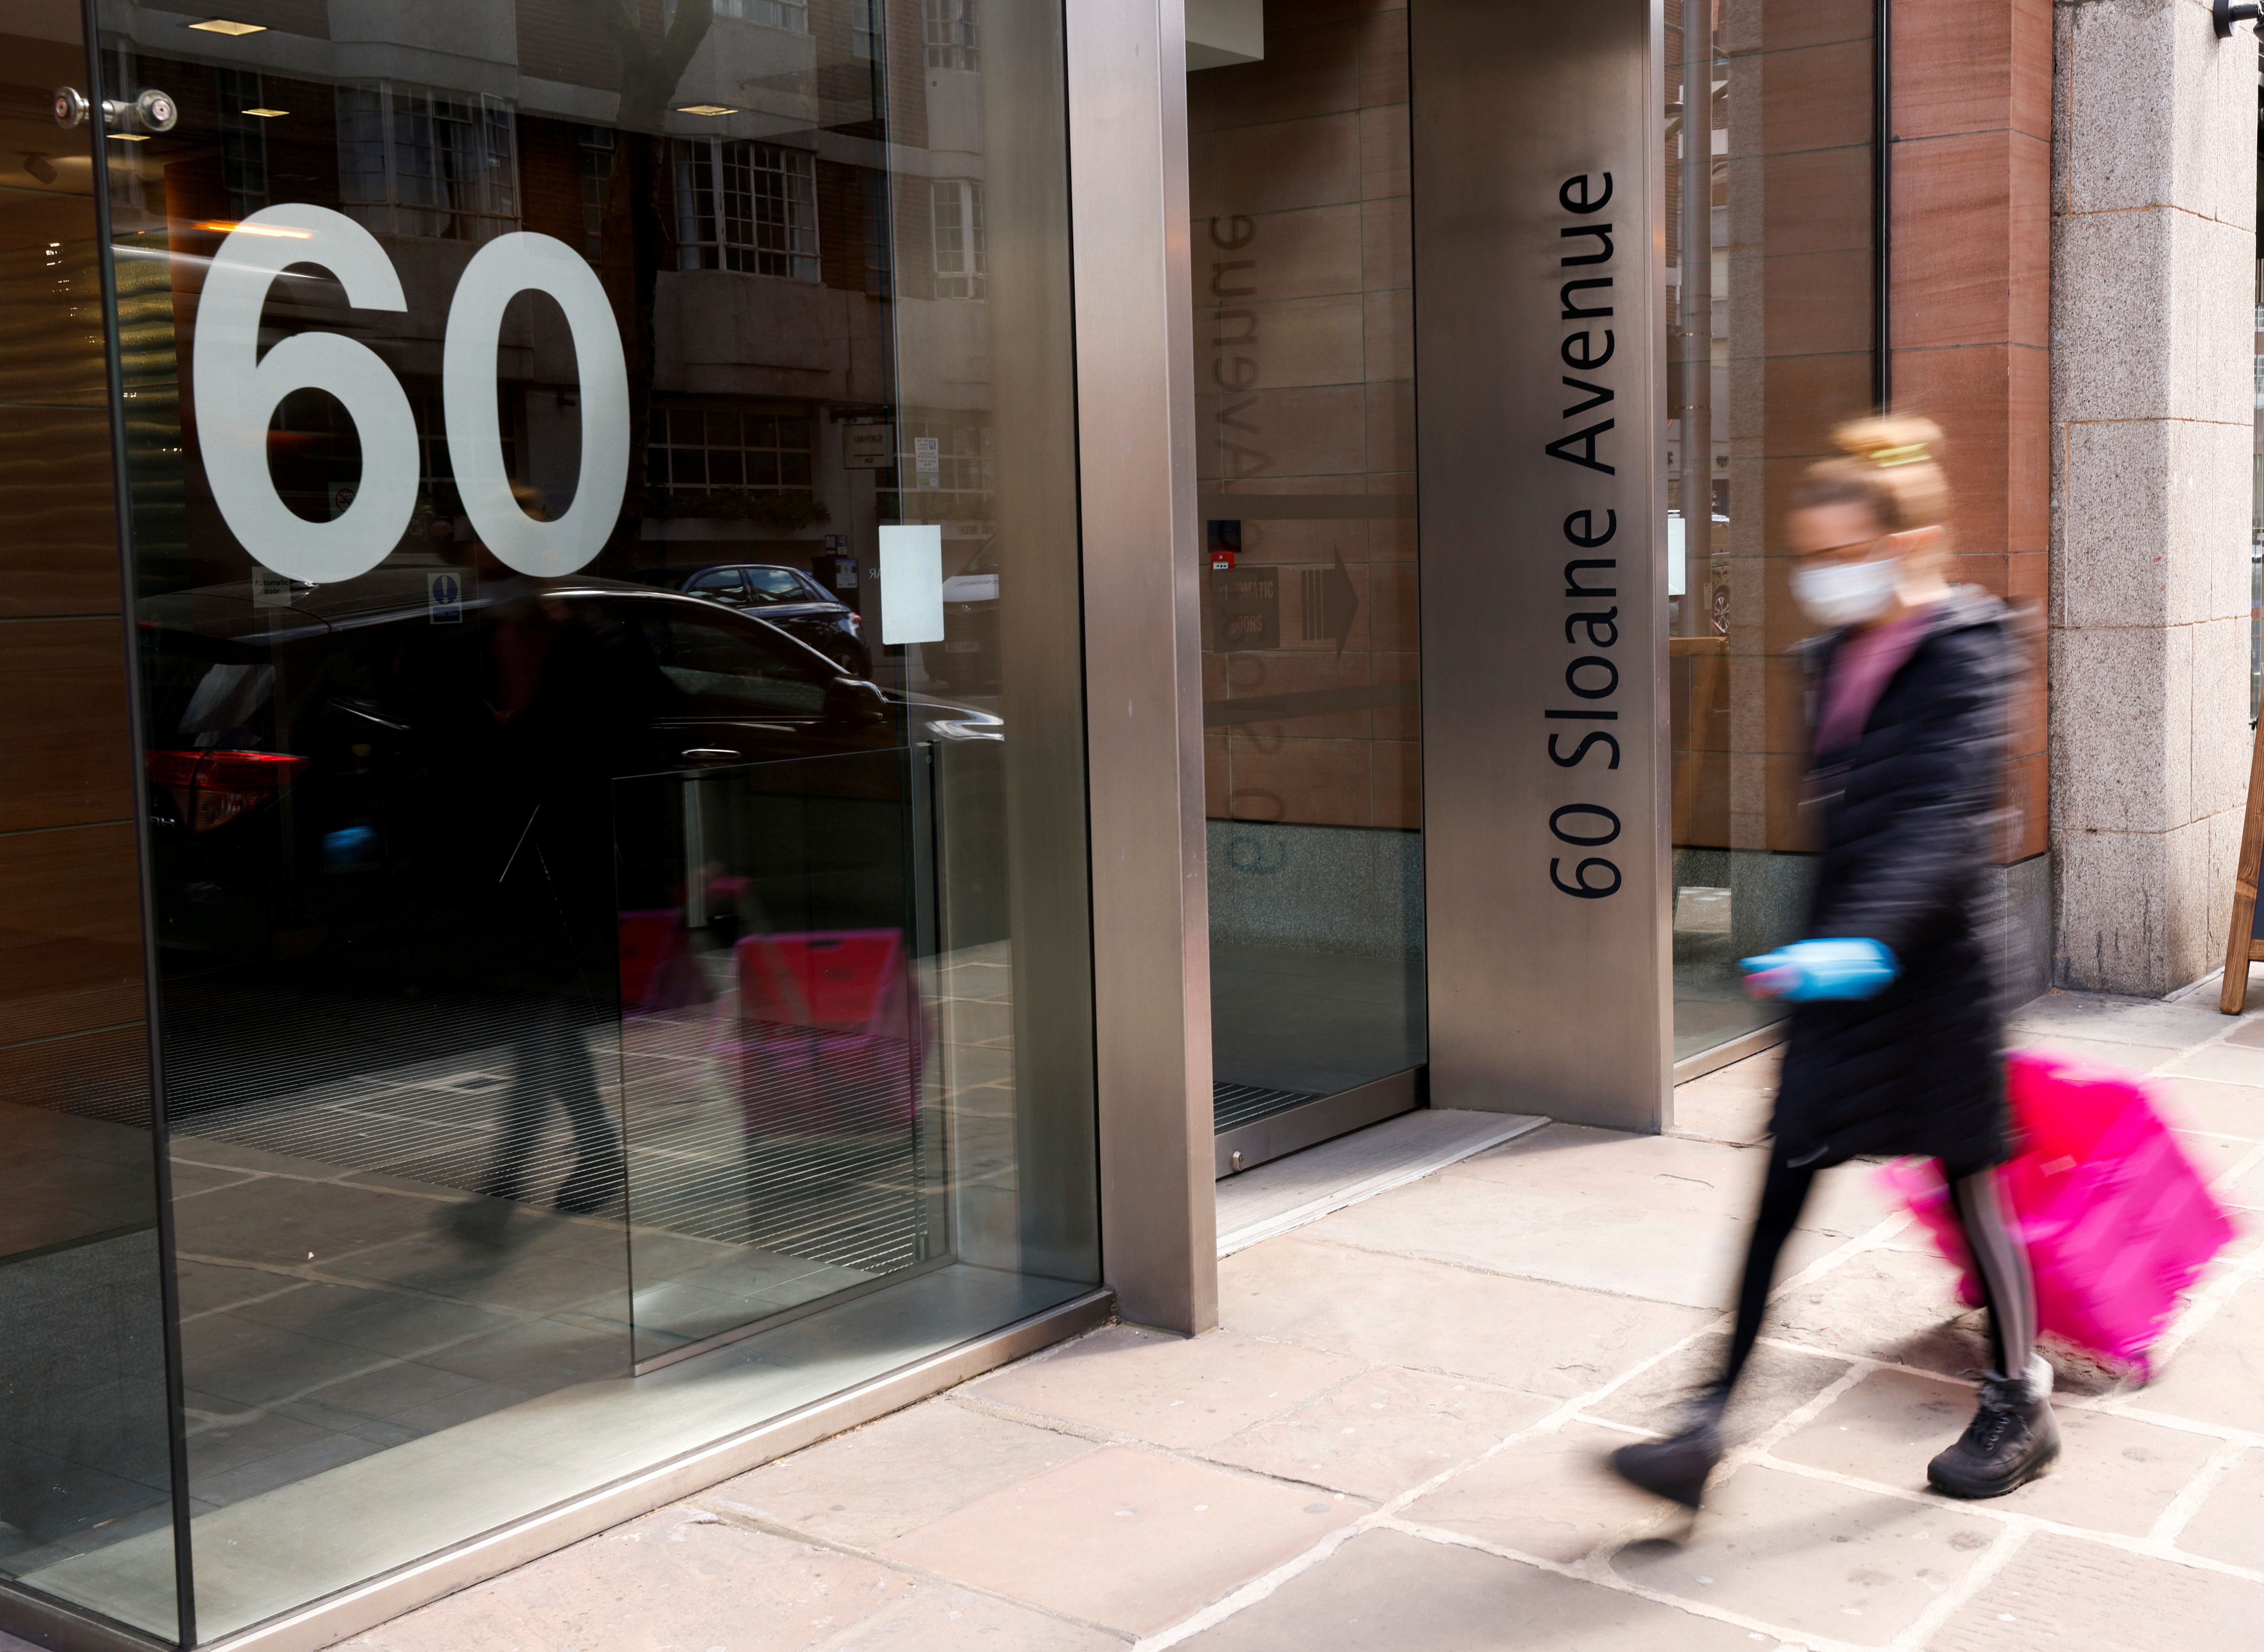 A woman walks past the entrance to the 60 Sloane Avenue in London, Britain, April 13, 2021. REUTERS/John Sibley